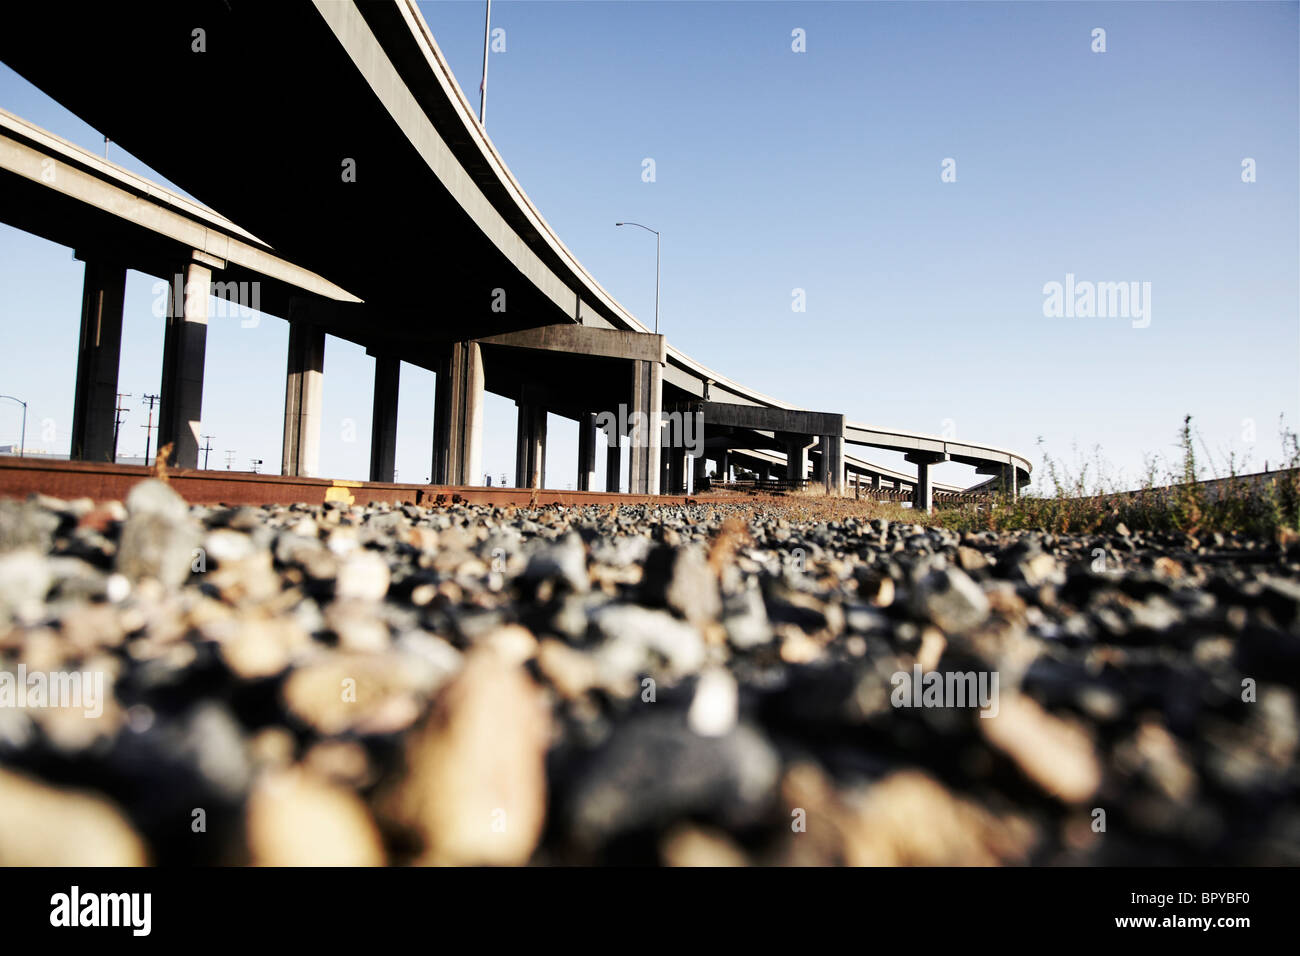 Industrial landscape with highway overpass - Stock Image